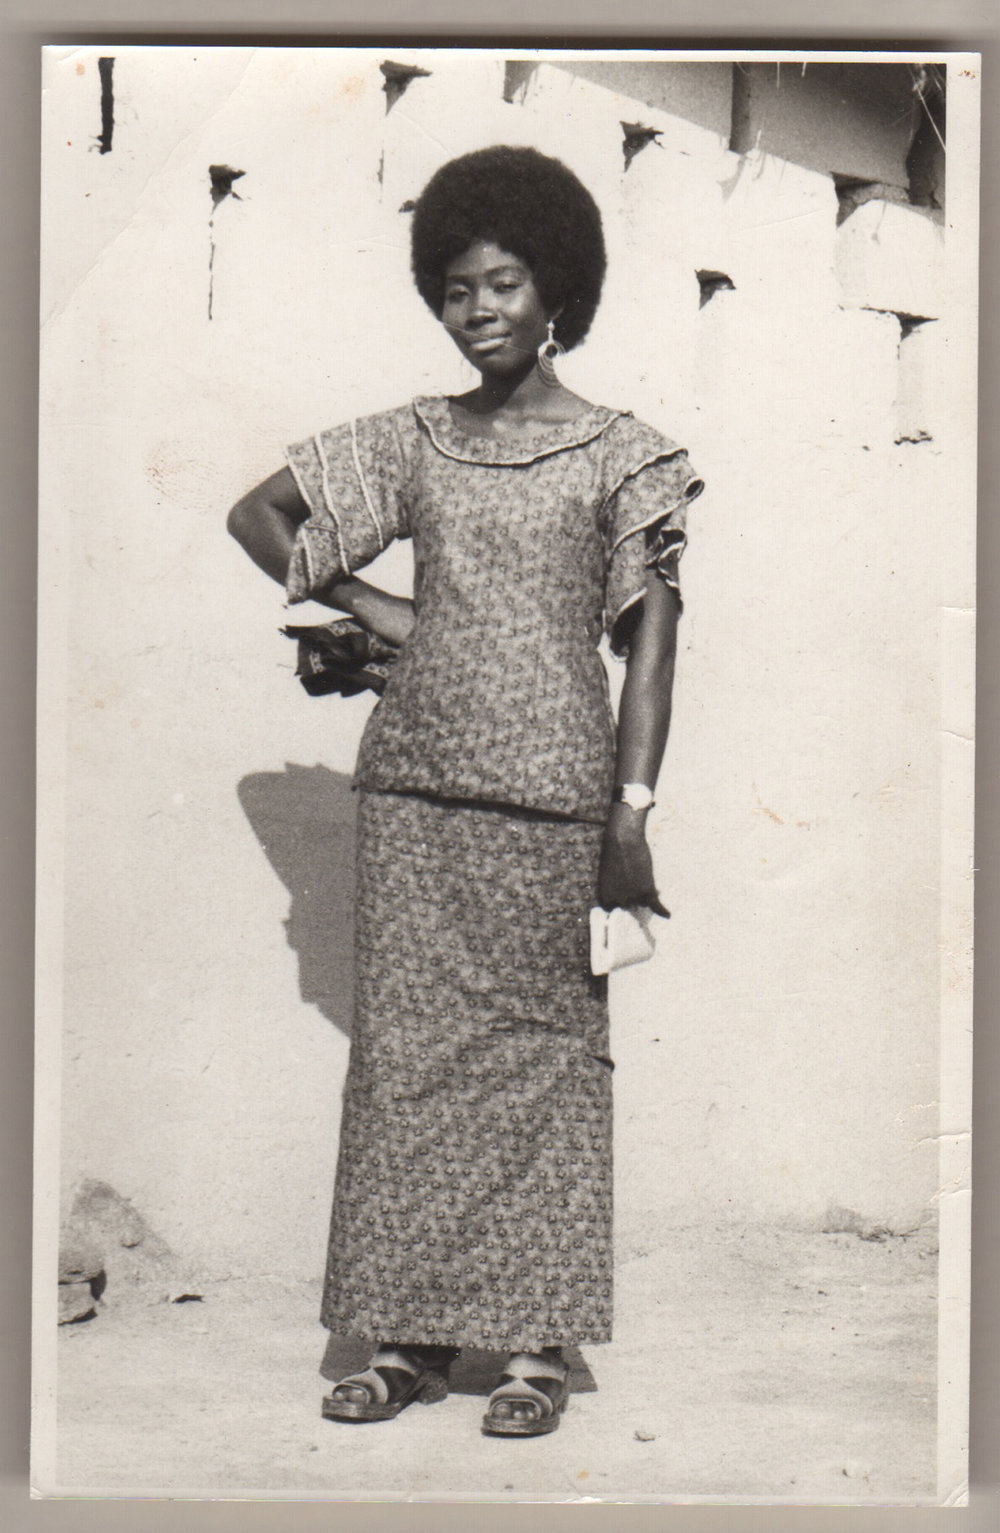 Photographer unknown, Aunty Korama in Kaba and Slit, Accra, Ghana, 1970s